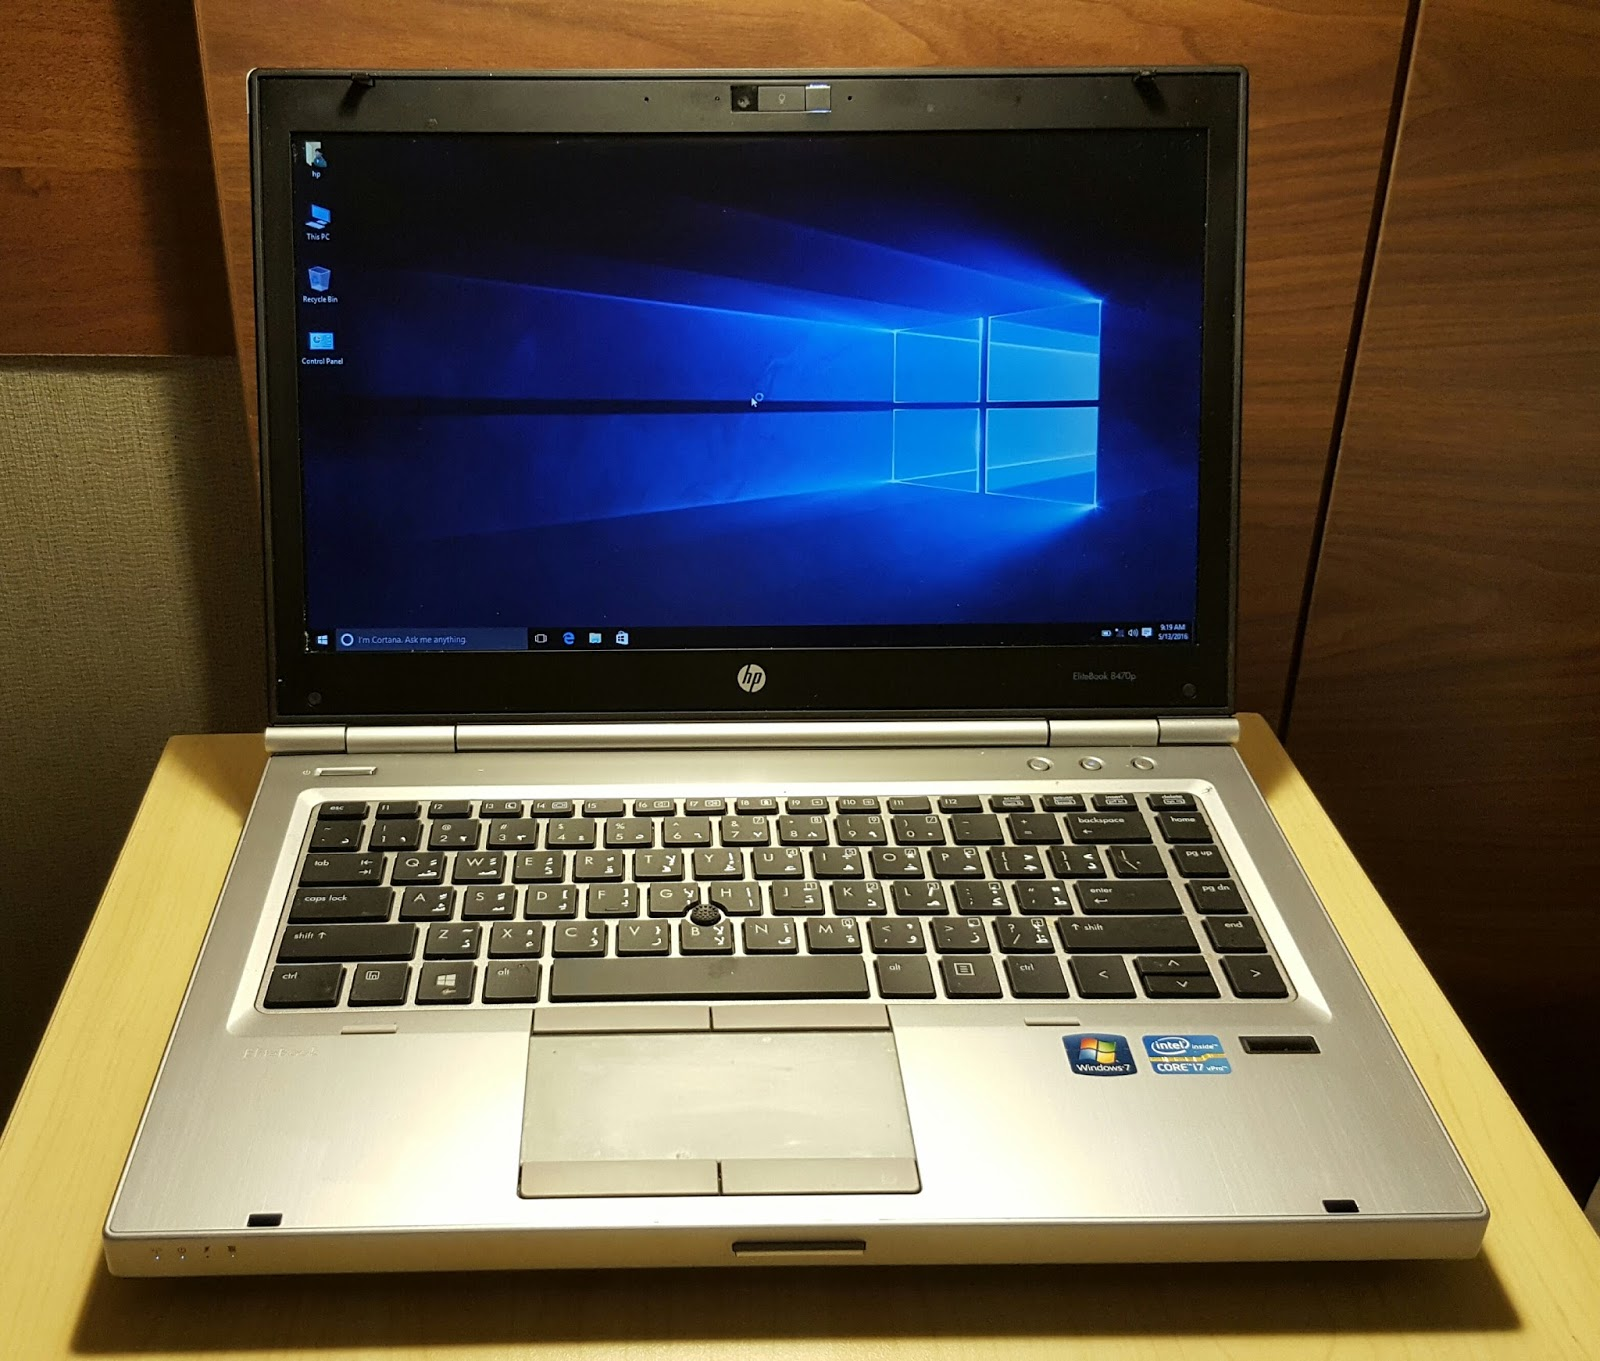 Hp Elitebook 8460p Used Laptops Oman Laptops With I7 Processor